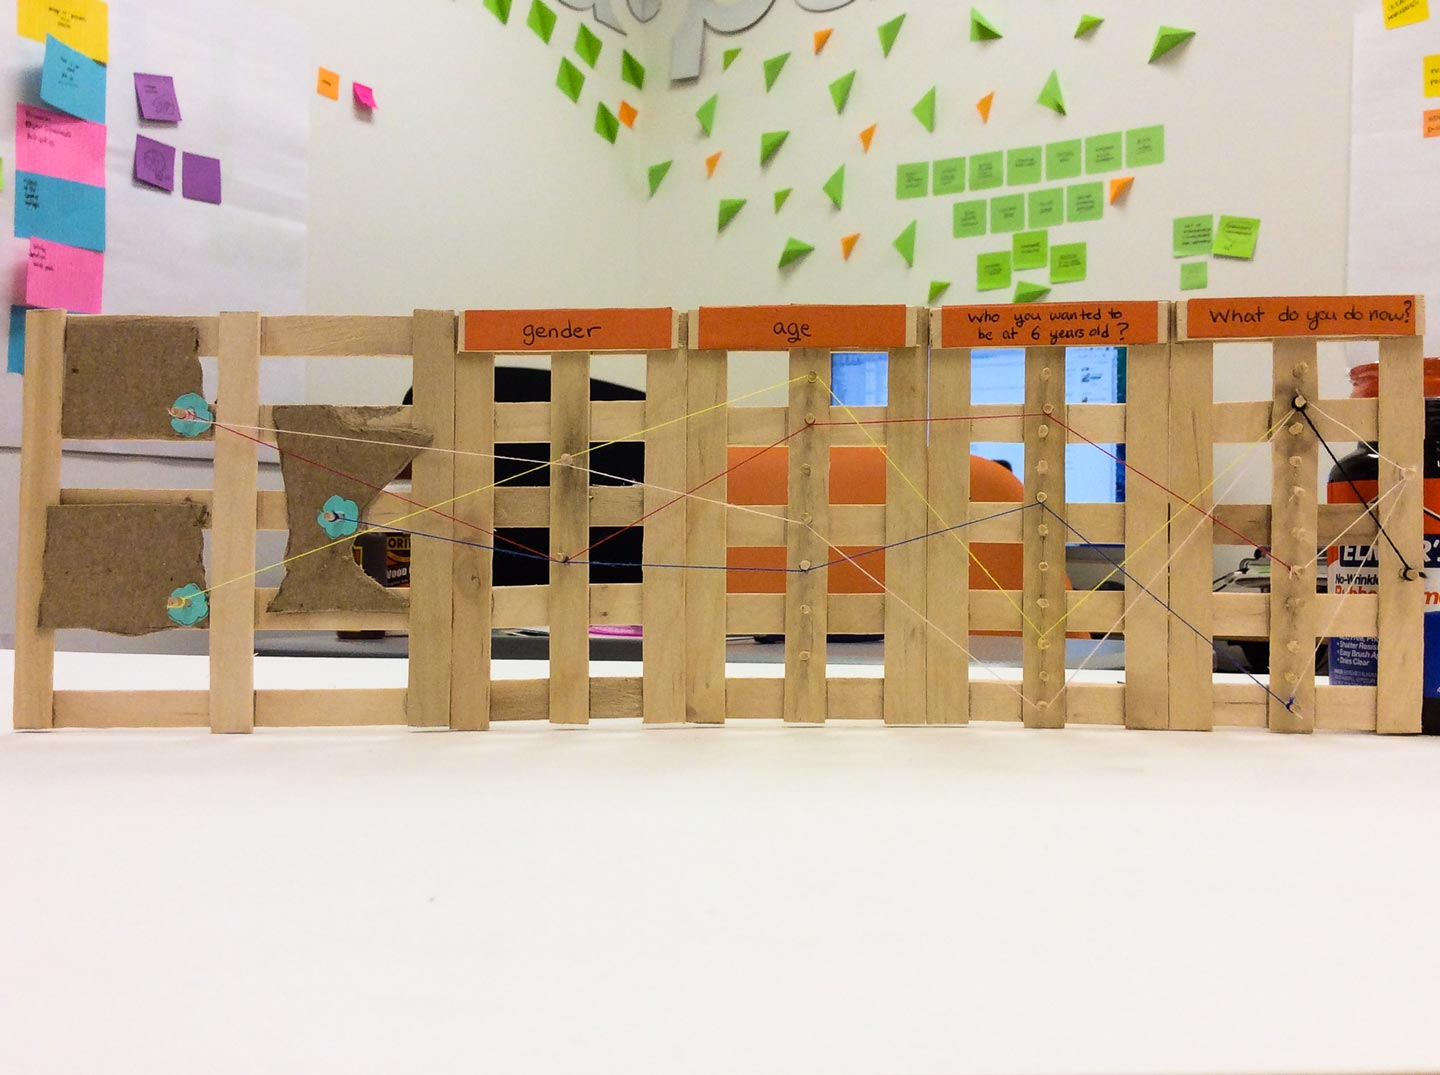 Small prototype of wooden structure containing outlines of North Dakota, South Dakota, and Minnesota